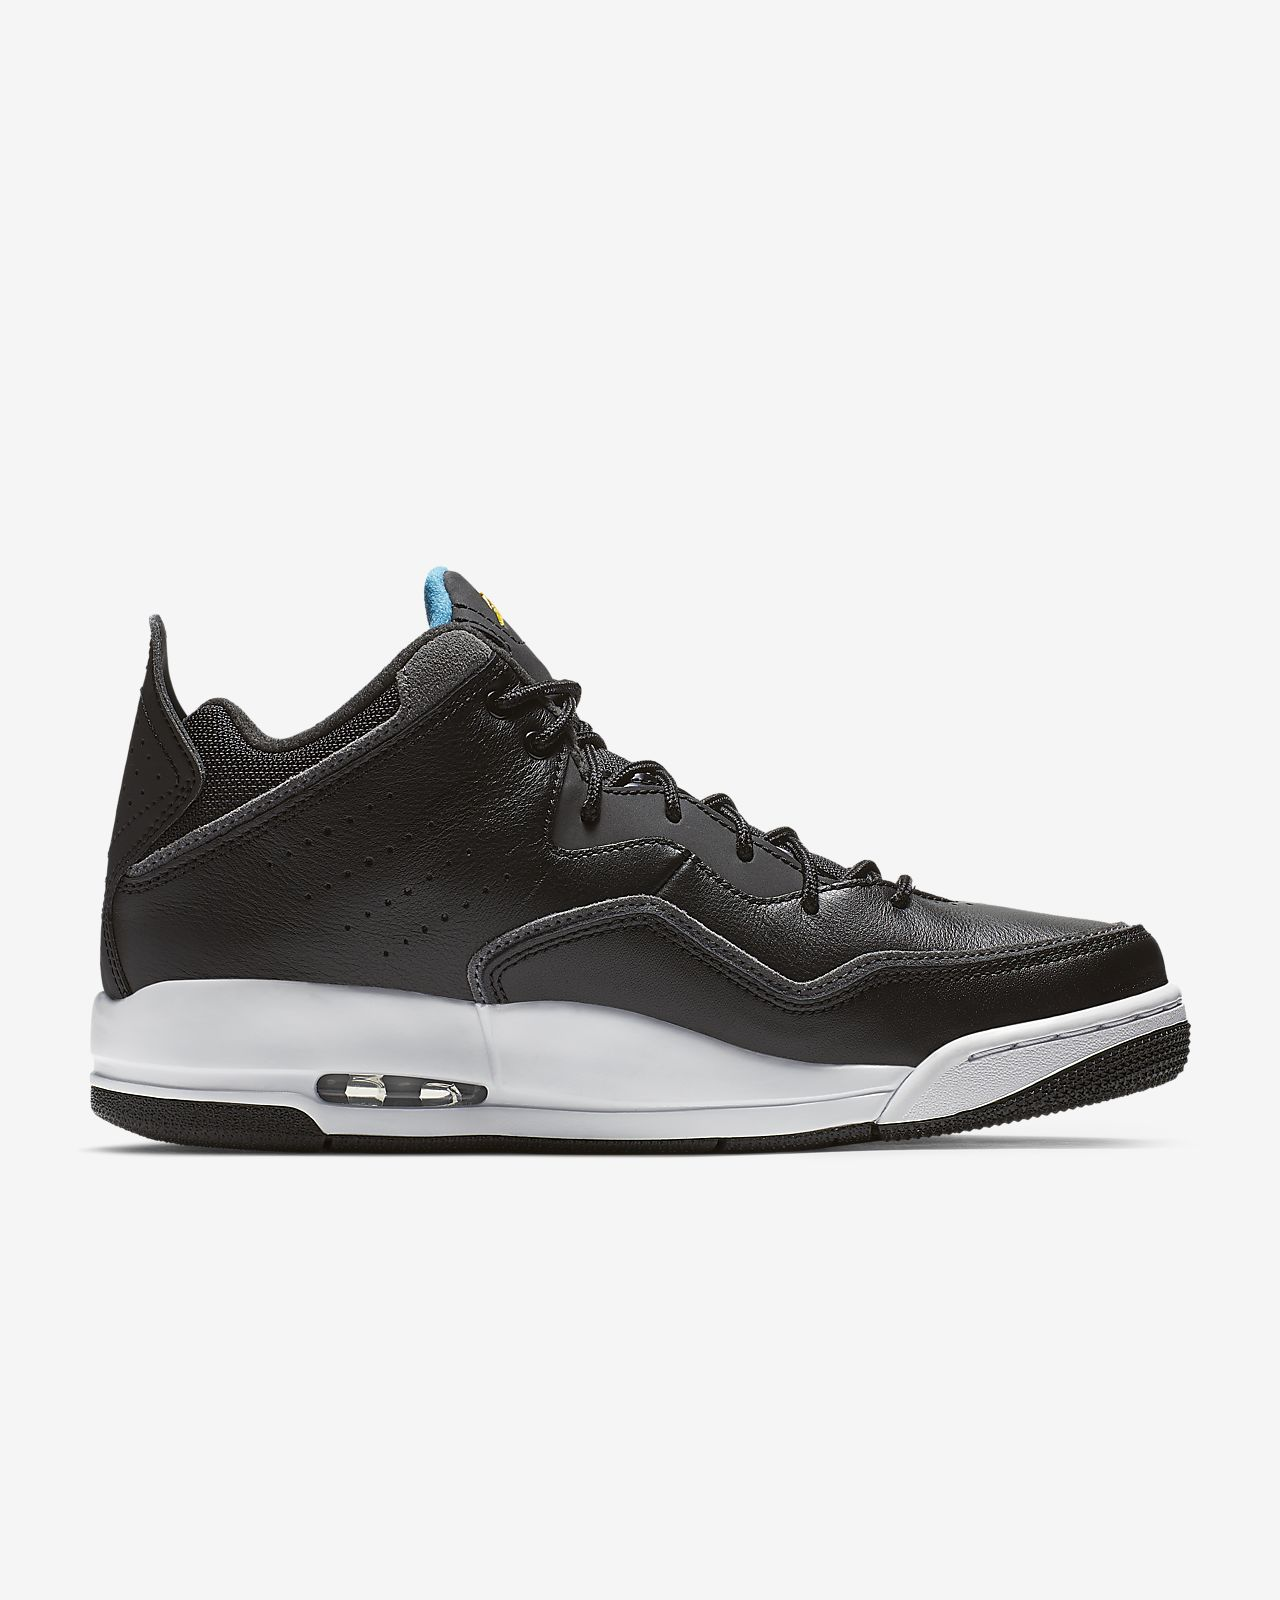 fb6dab4d9f6 Jordan Courtside 23 Men's Shoe. Nike.com AU